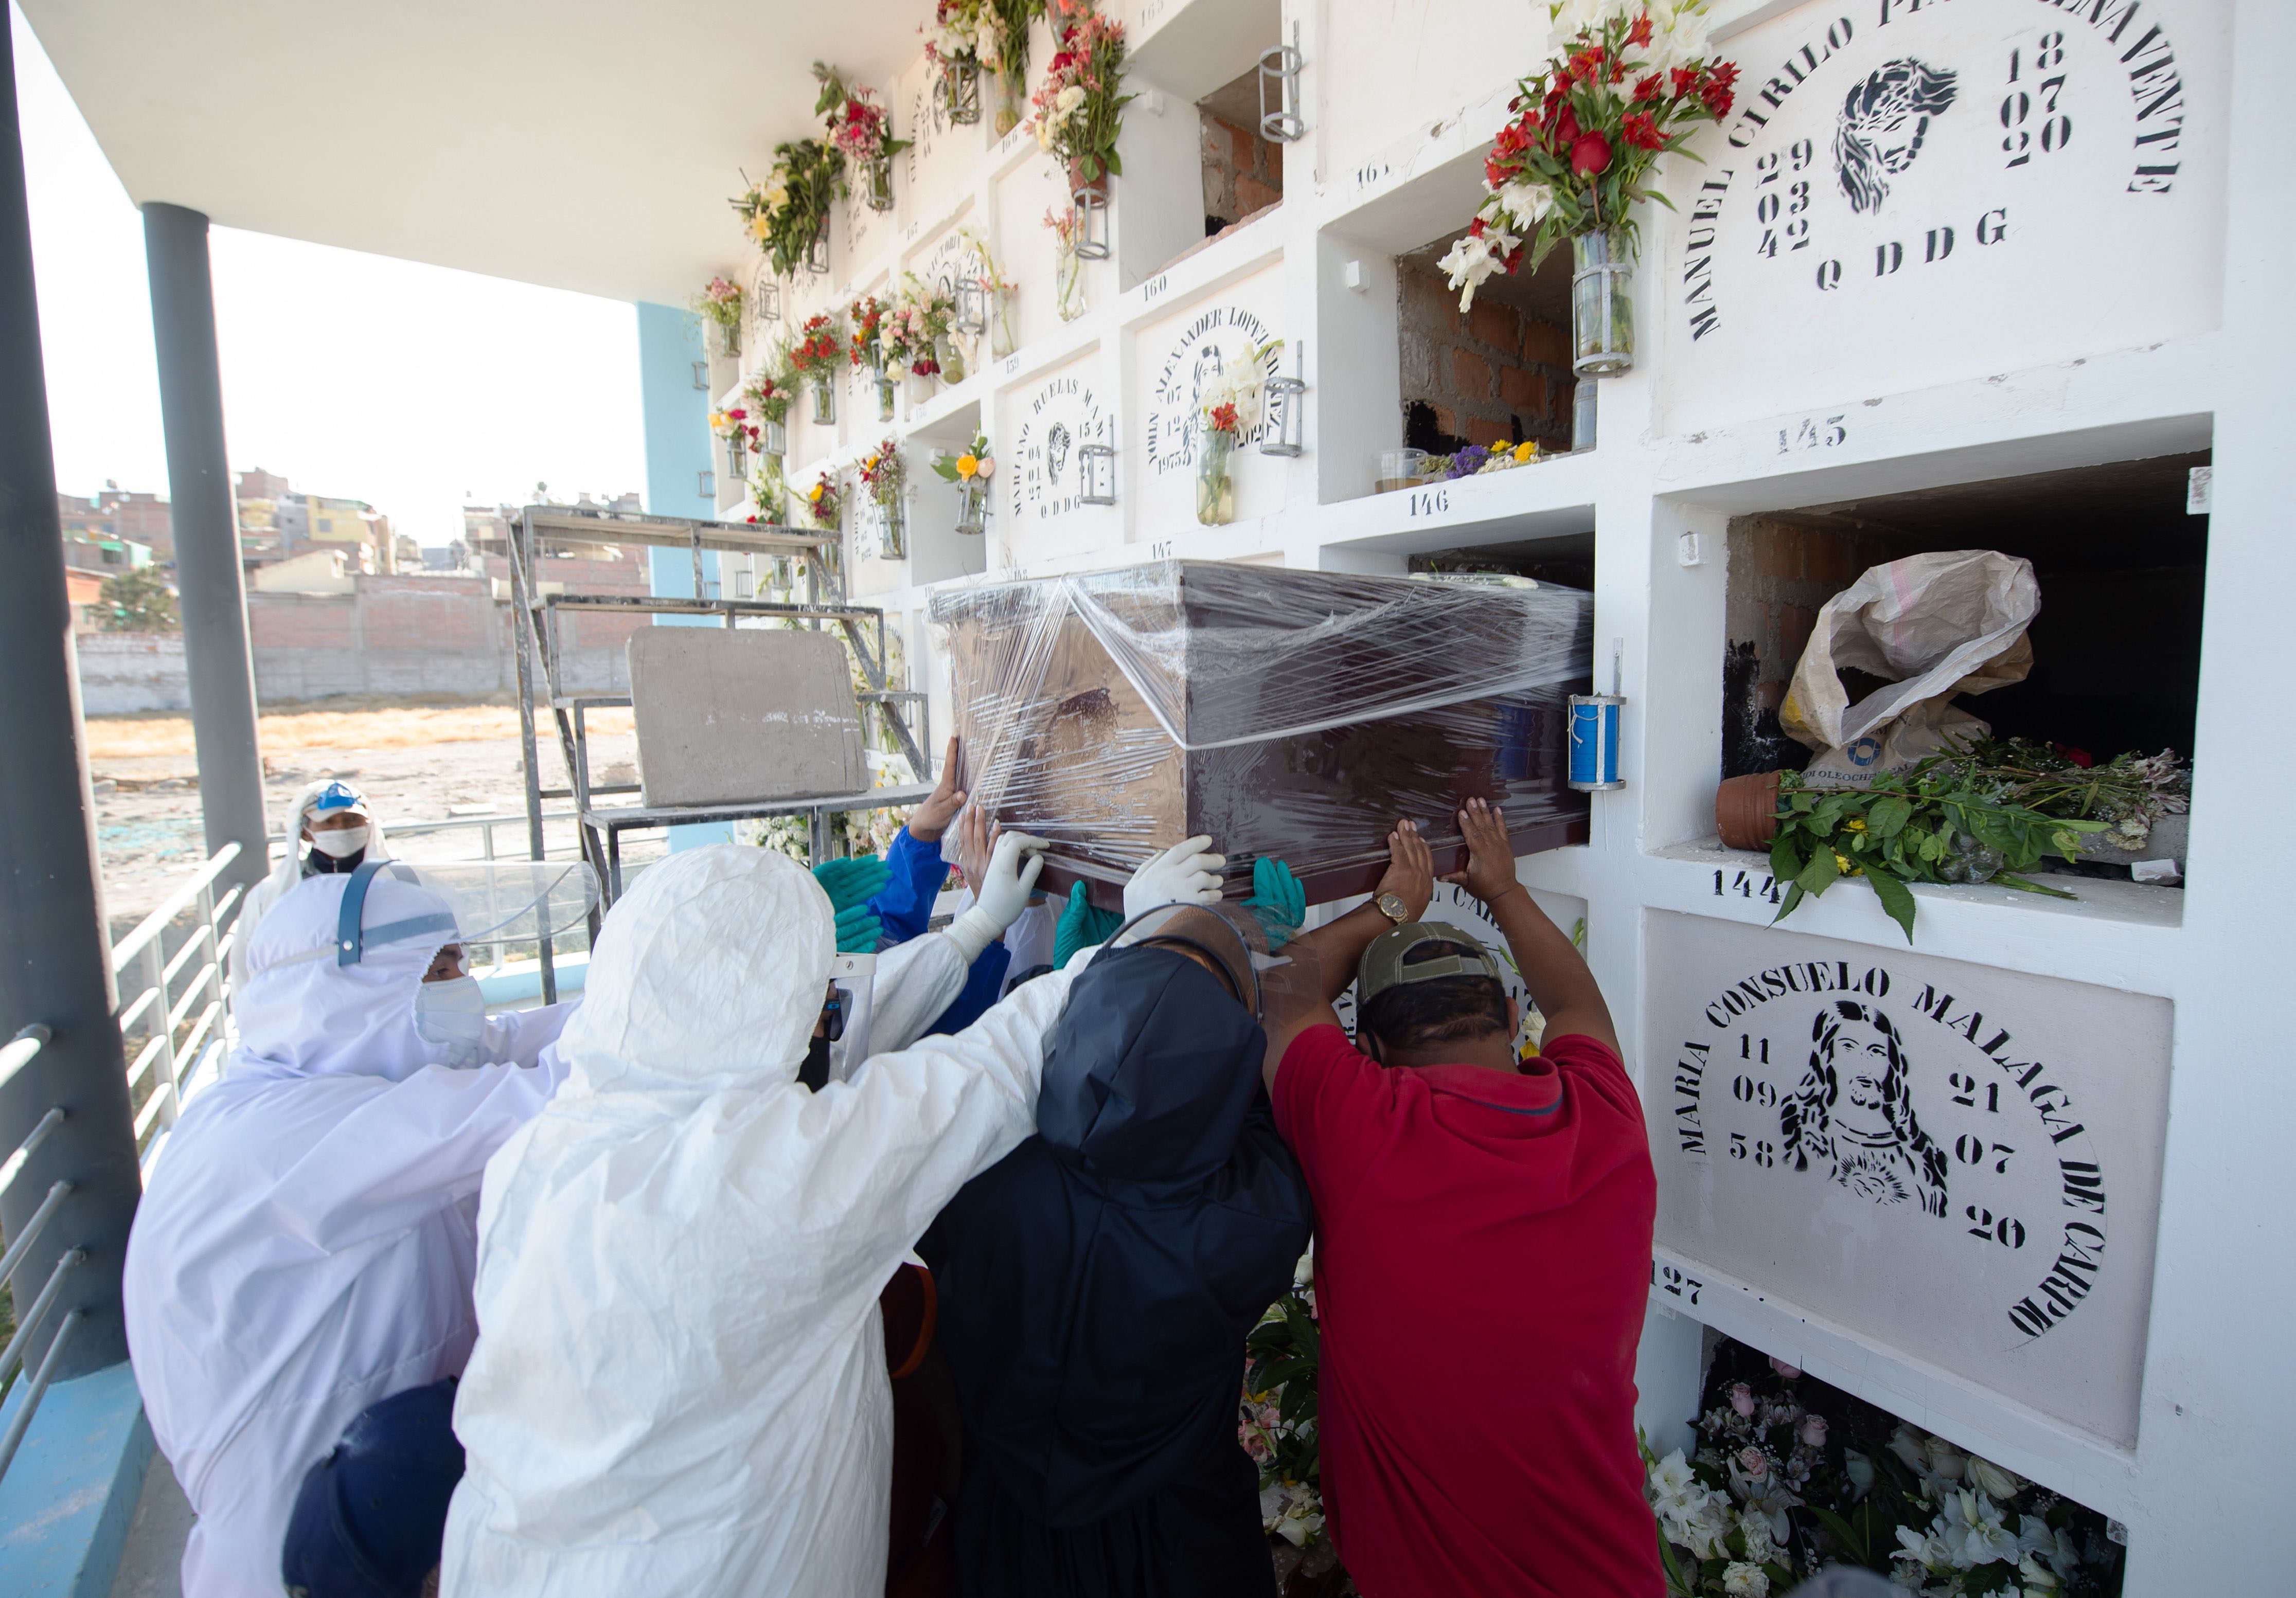 People bury someone said to have died from Covid-19 at a cemetery in Arequipa, Peru, on July 22.